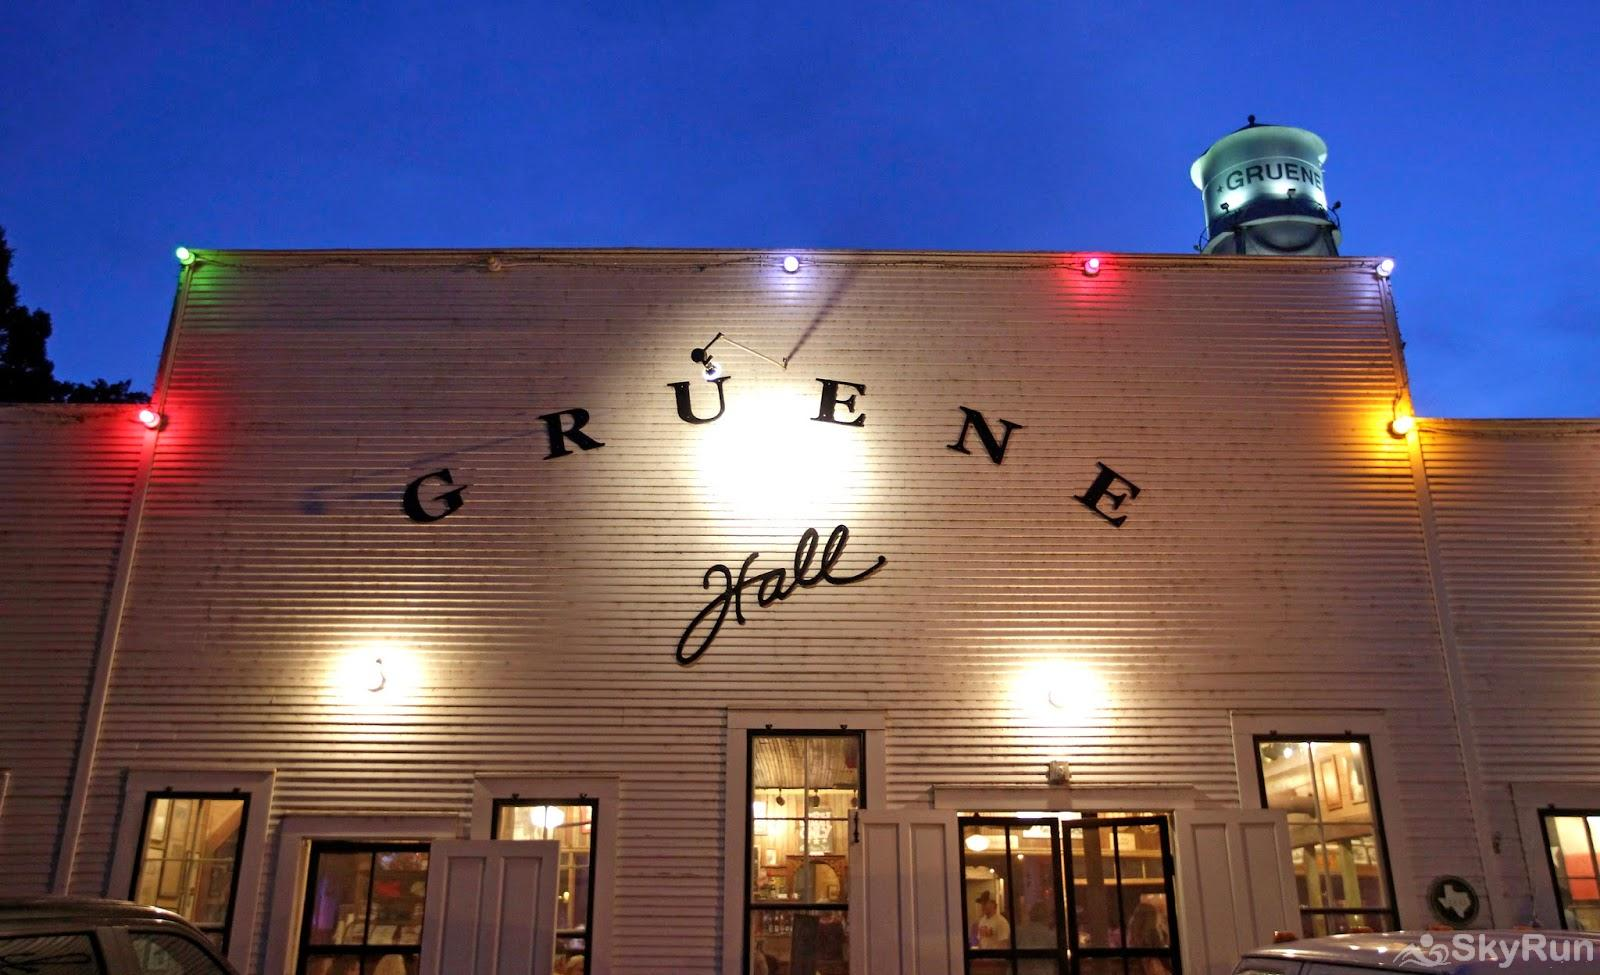 SUNSET RIVER HAUS Gruene Hall and Historic District, 8 miles away